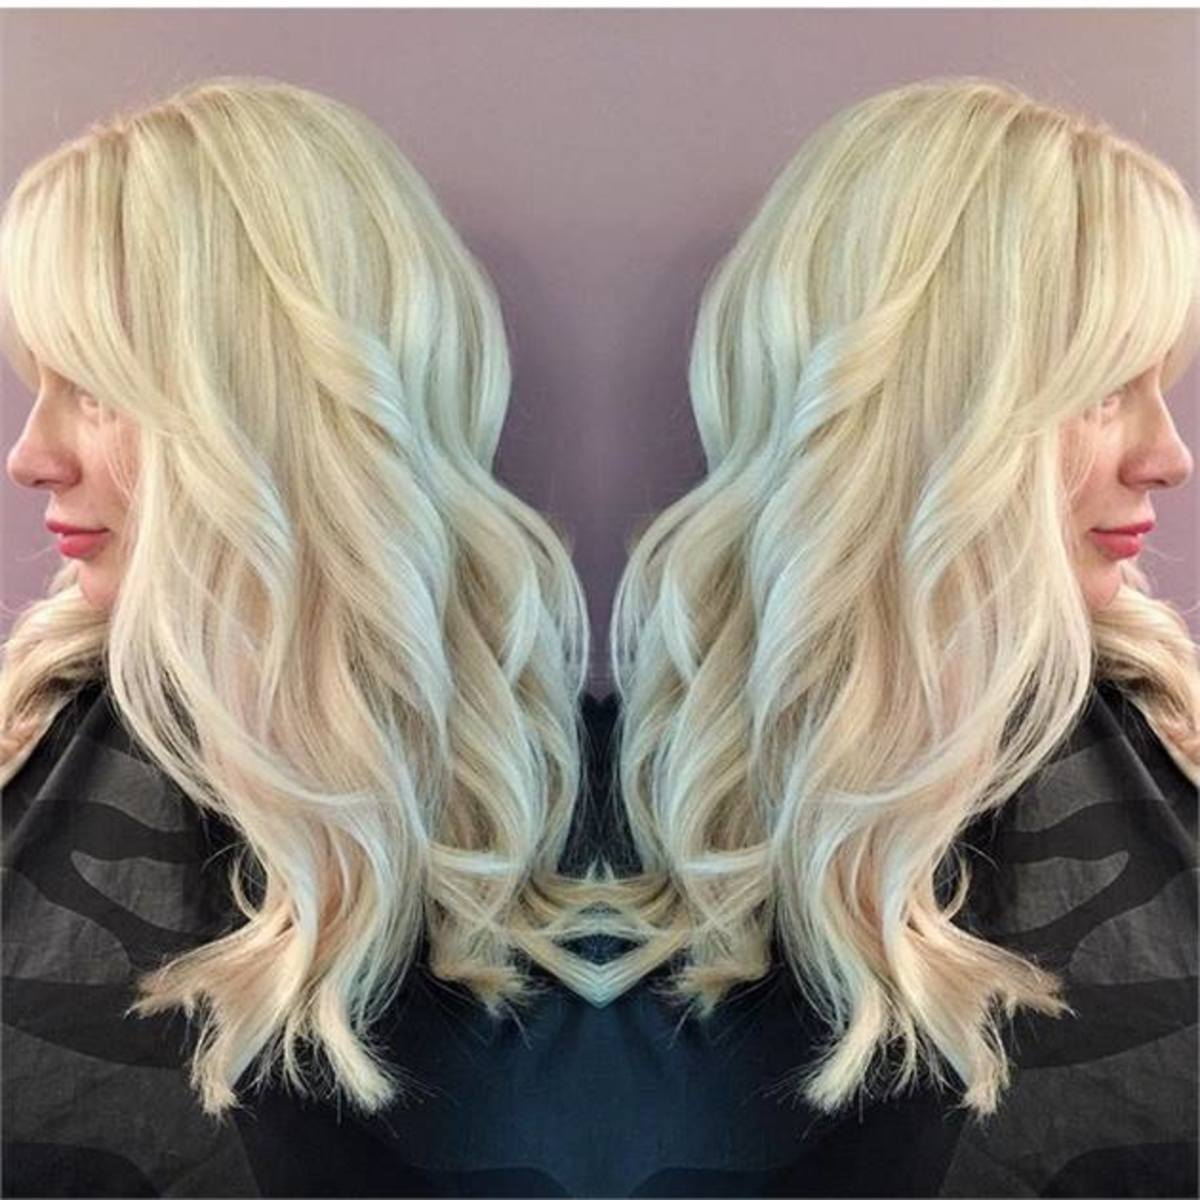 From a natural level 7 to a level 10 using Wella KP Hi-lift 12/89 and 40-volume developer. Allow to process for one hour. NO HEAT.